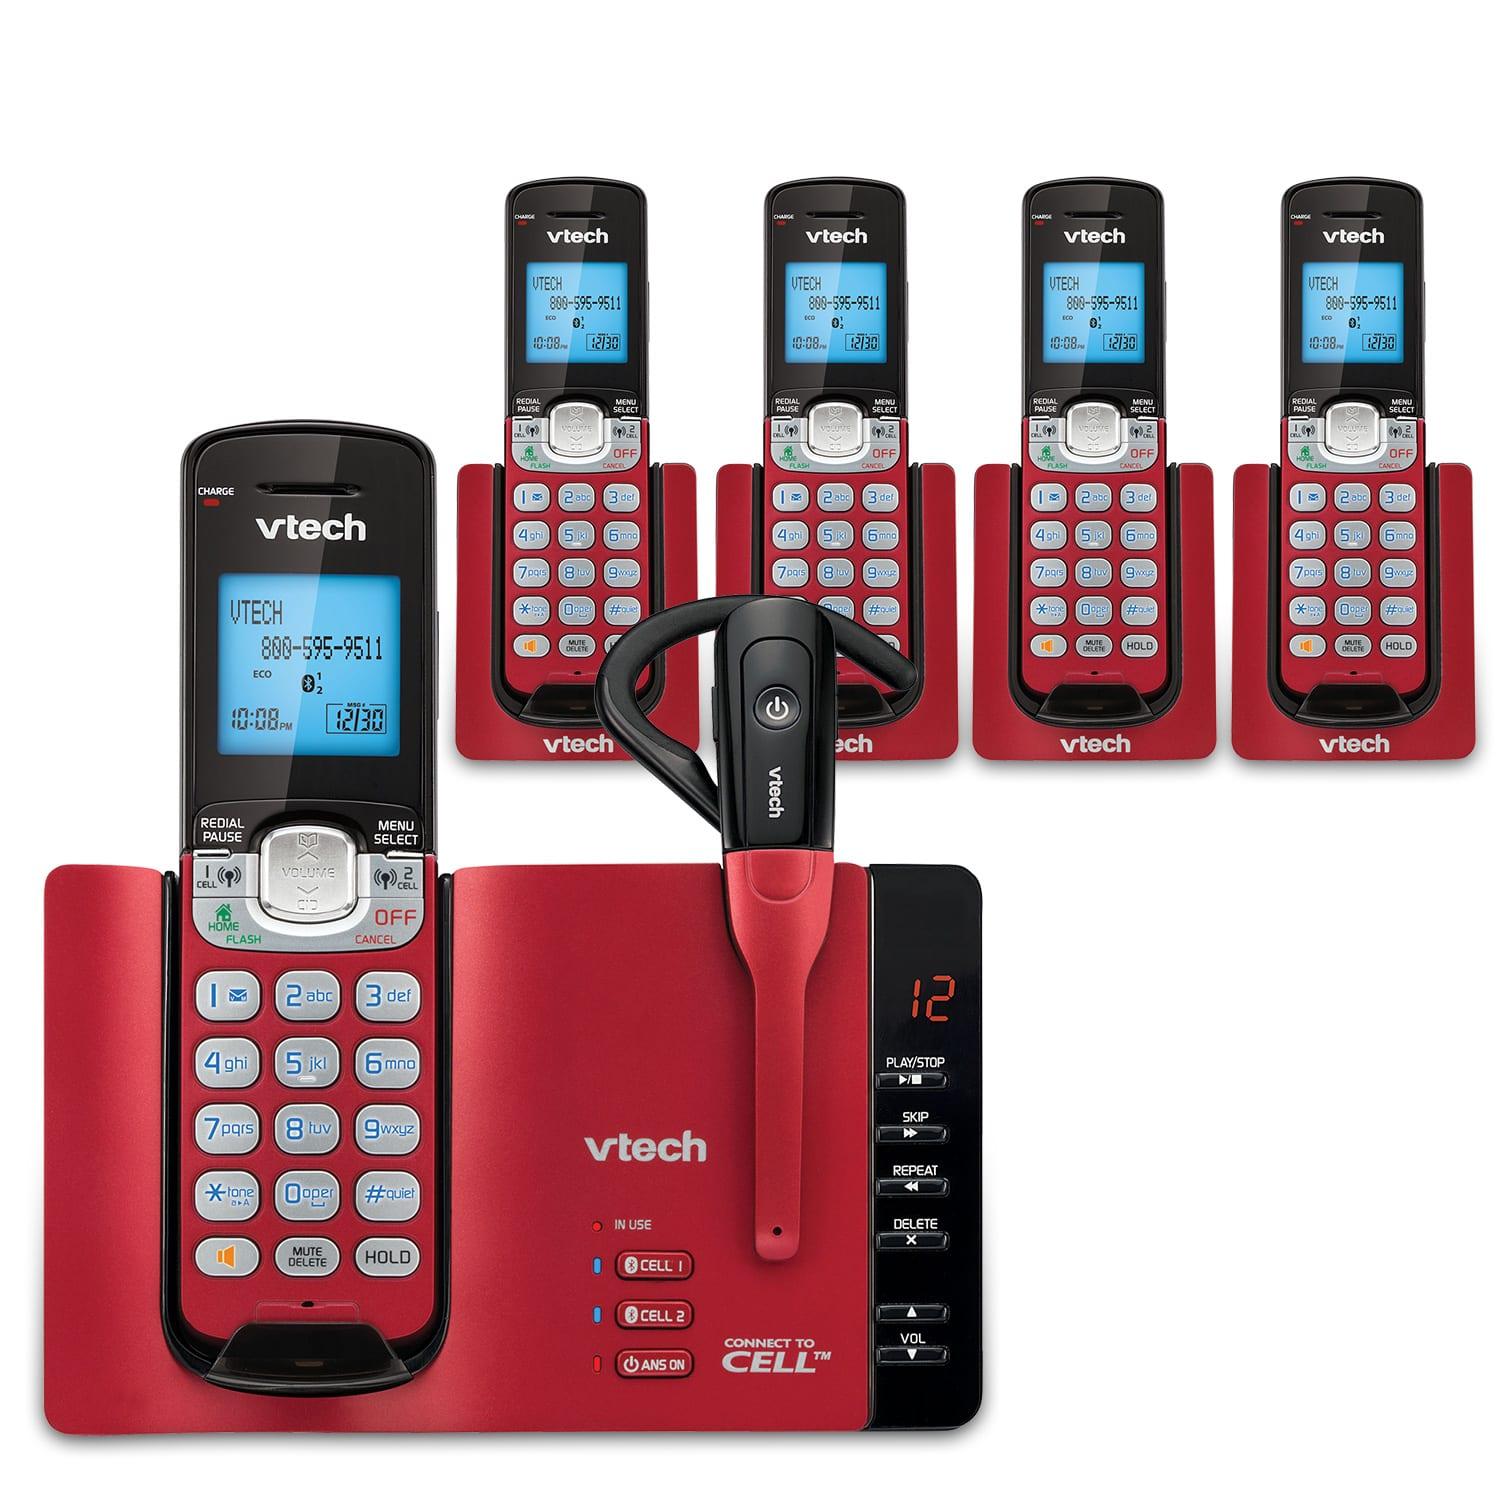 Wireless Handset For Cell Phone Data Wiring 18118d1267131309wiringgarage2204wirefeedersamebuildingjpg Connect To System With Cordless Headset Ds667v 2h Rh Vtechphones Com